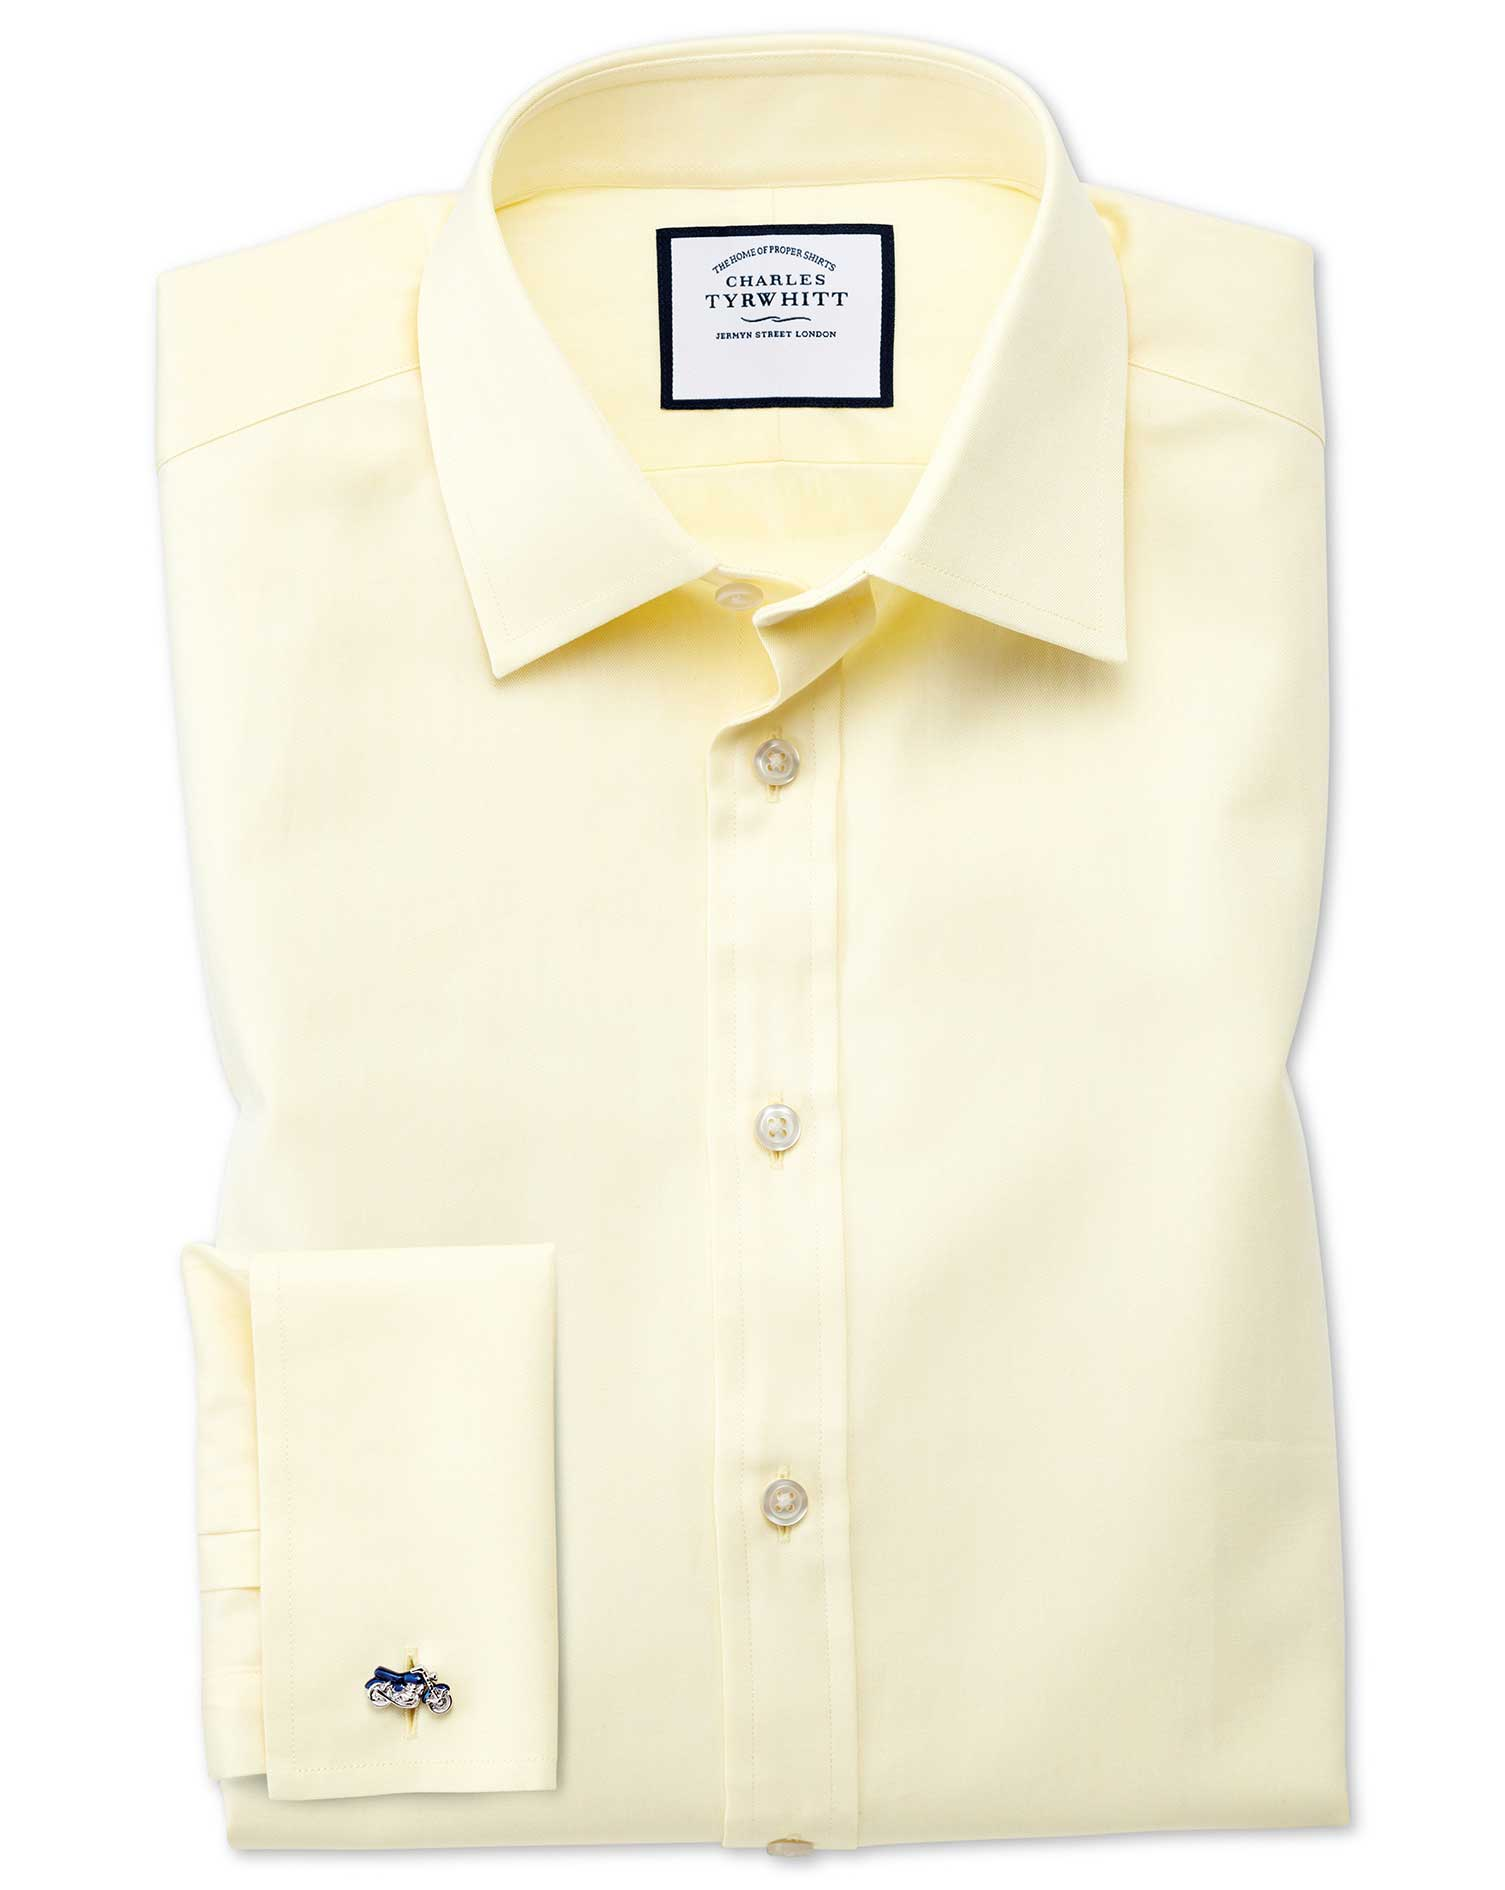 Slim Fit Fine Herringbone Yellow Cotton Formal Shirt Single Cuff Size 16/33 by Charles Tyrwhitt